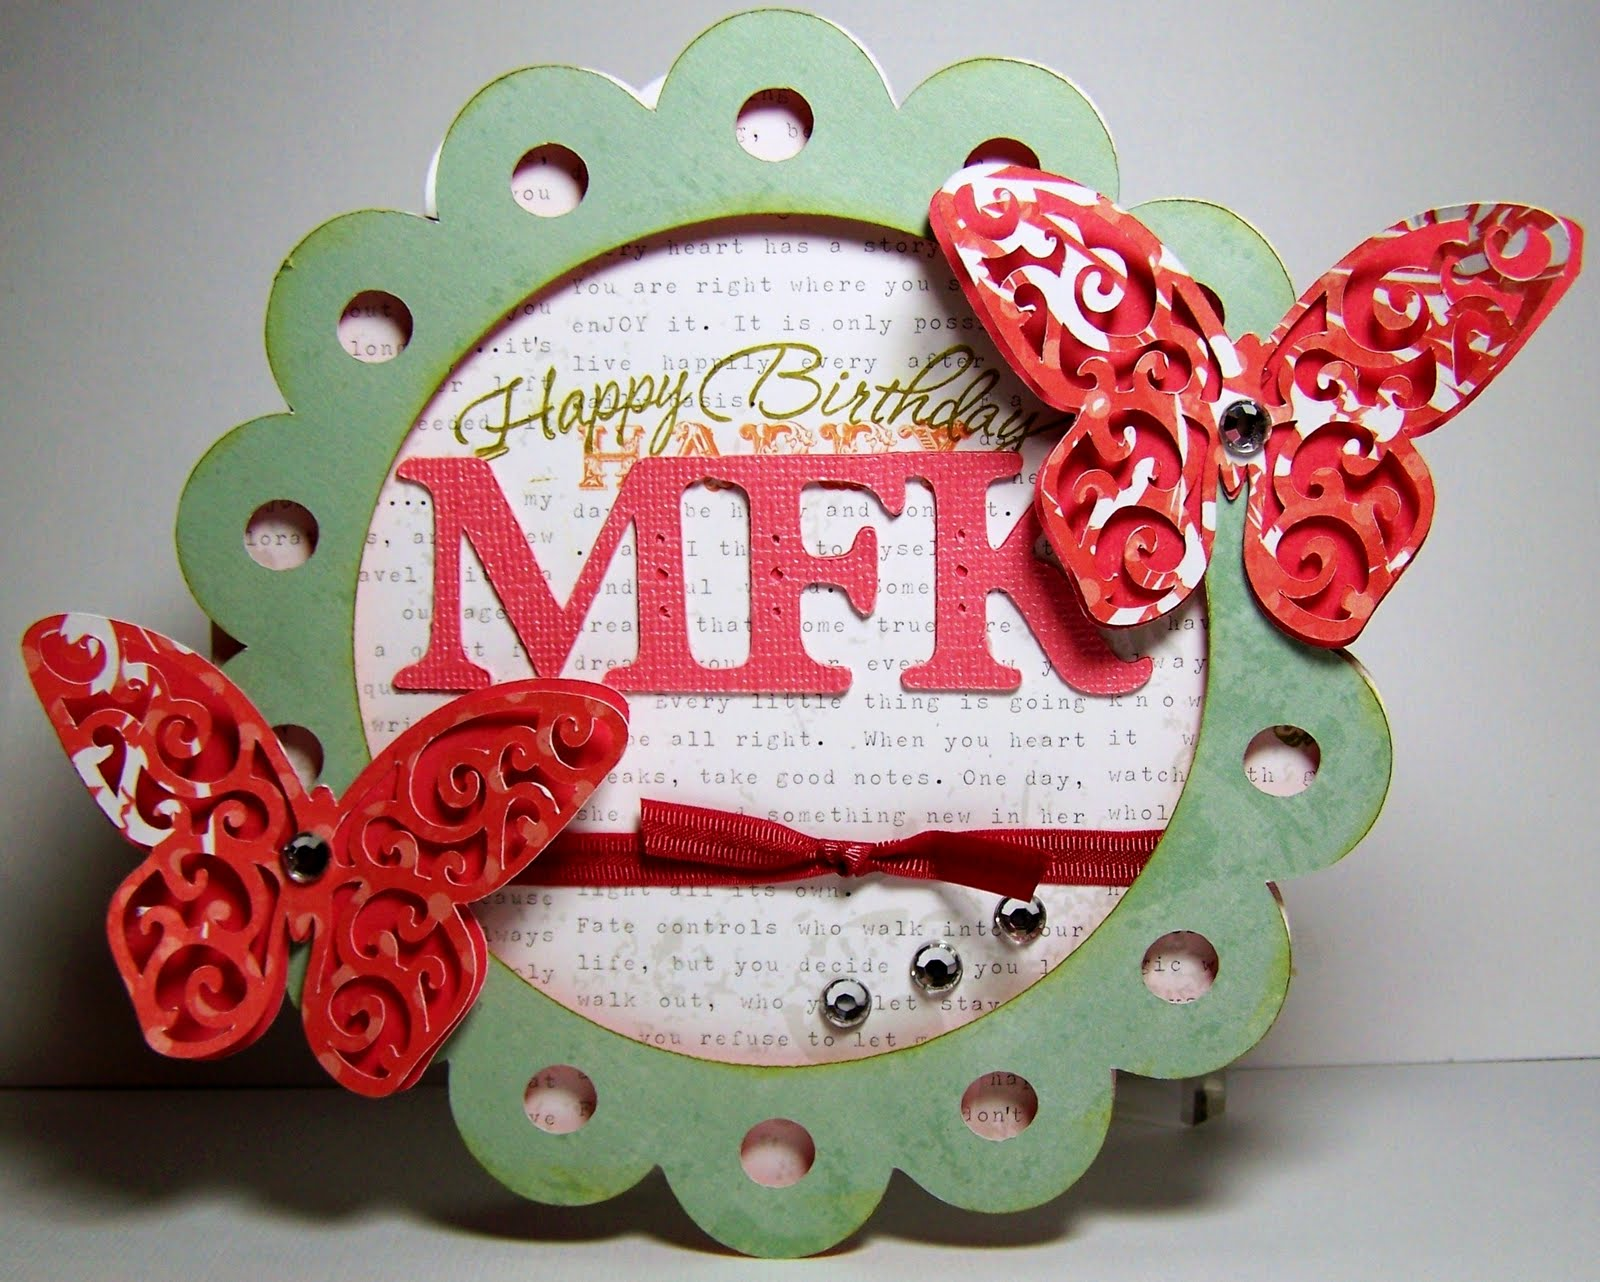 Birthday Wishes For Her Images ~ Busy with the cricky: belated happy birthday wishes to mfk